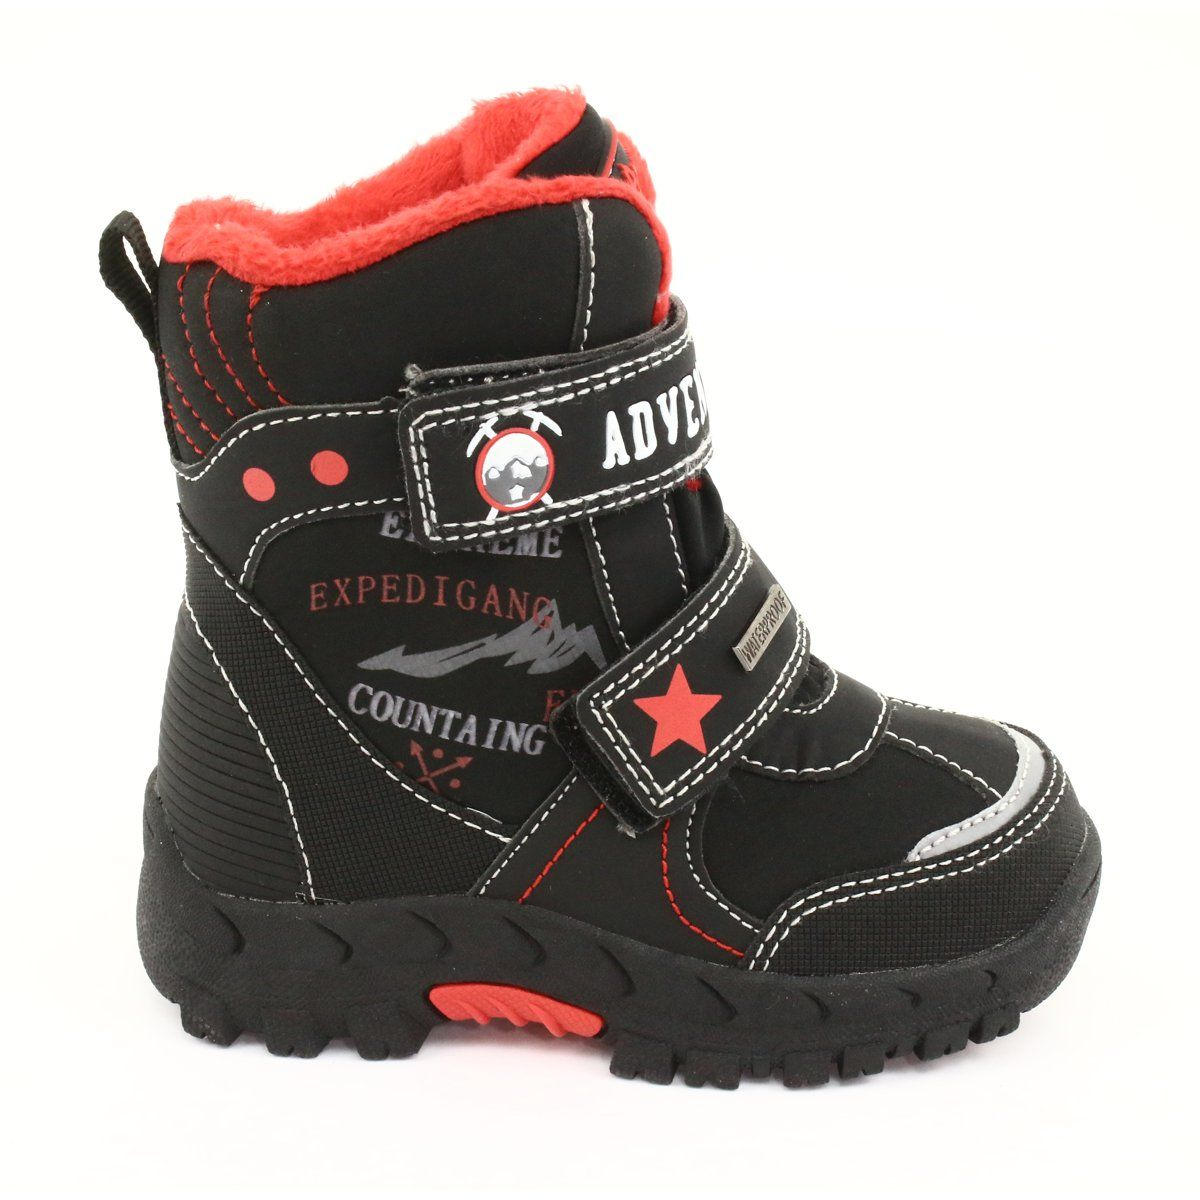 Boots For Children Americanclub American Club American Boots Boots With Rl35 Membrane Boots Childrens Boots Kid Shoes